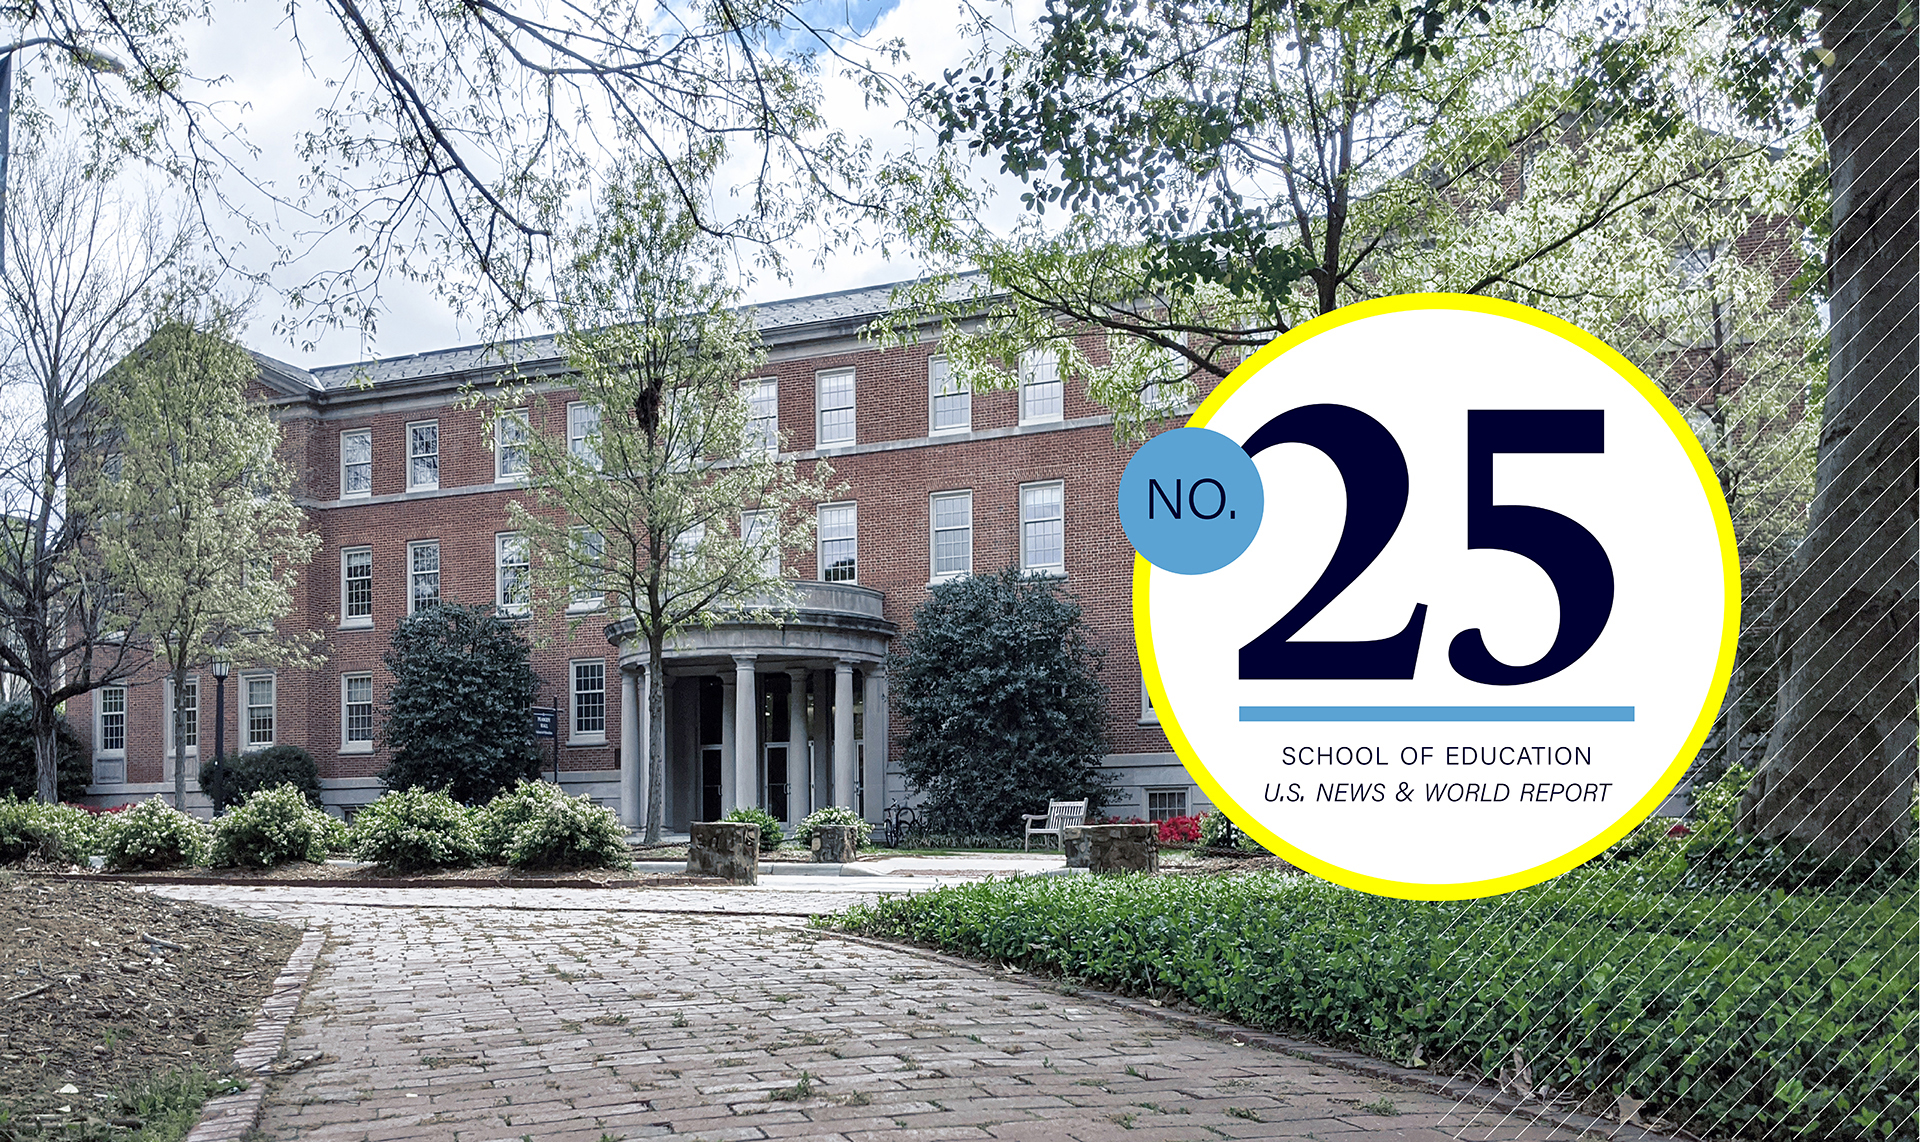 Peabody Hall with text No. 25 school of education ranked by U.S. News & World Report